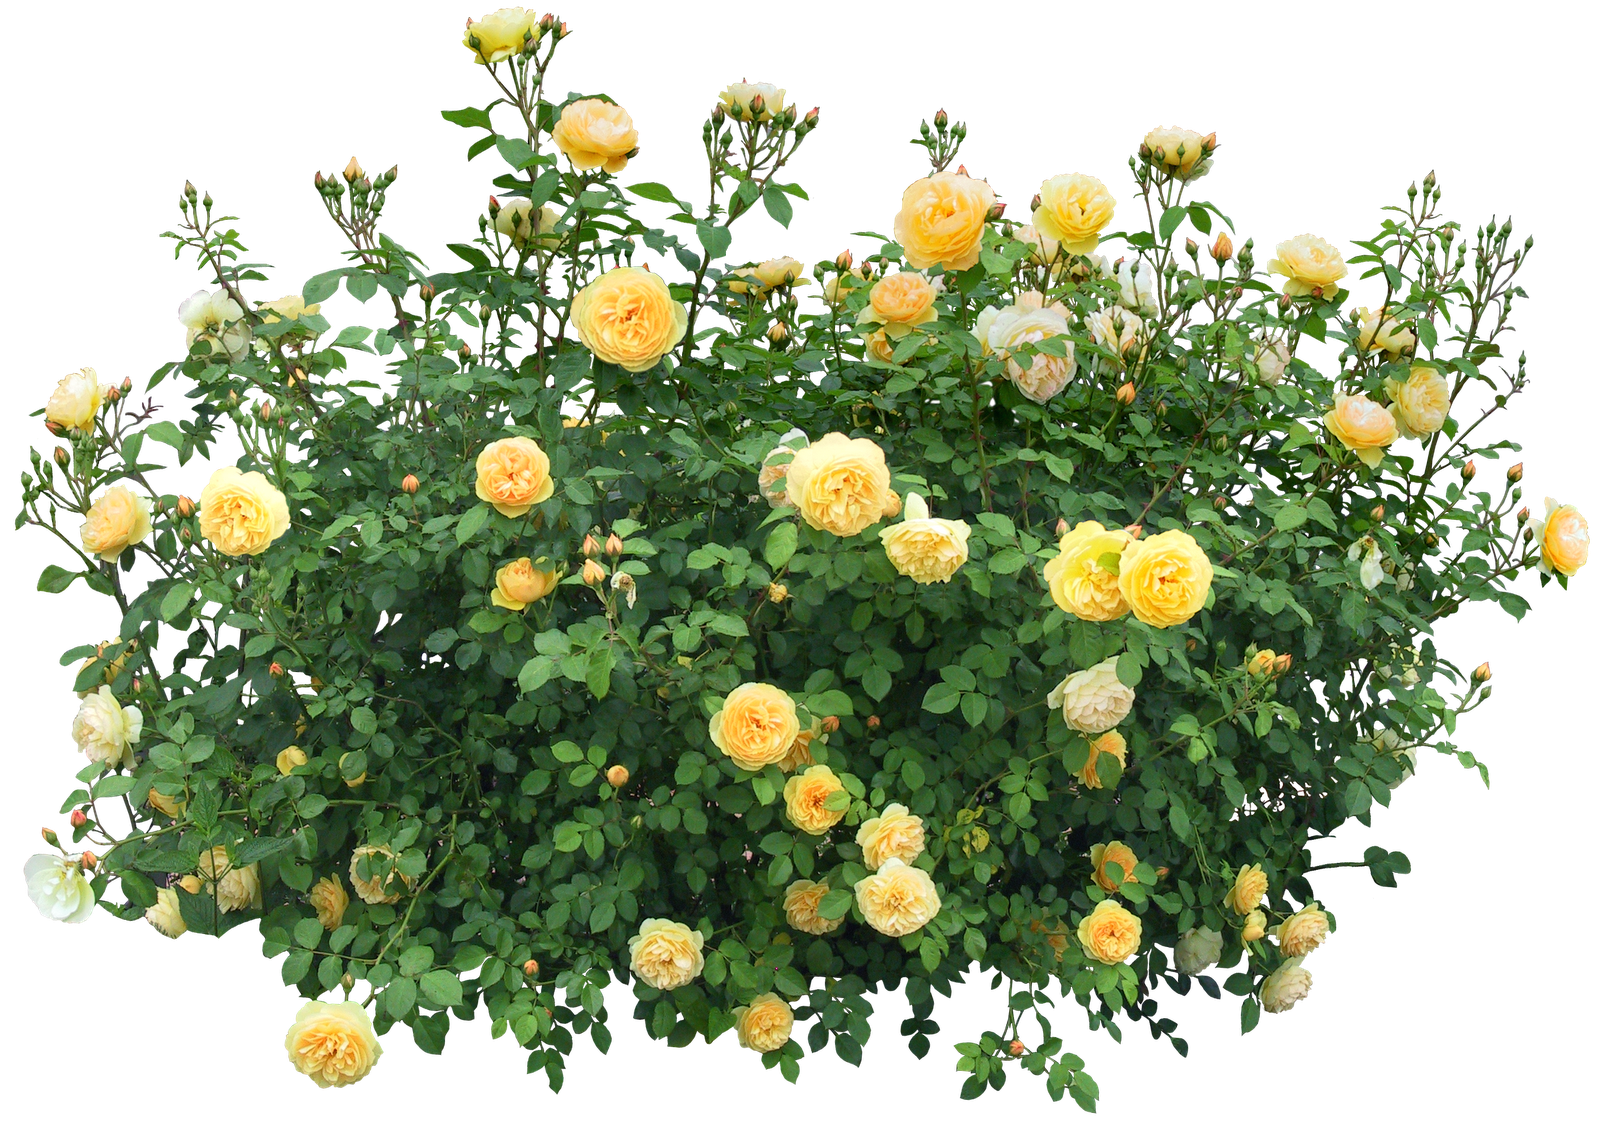 Bush with roses